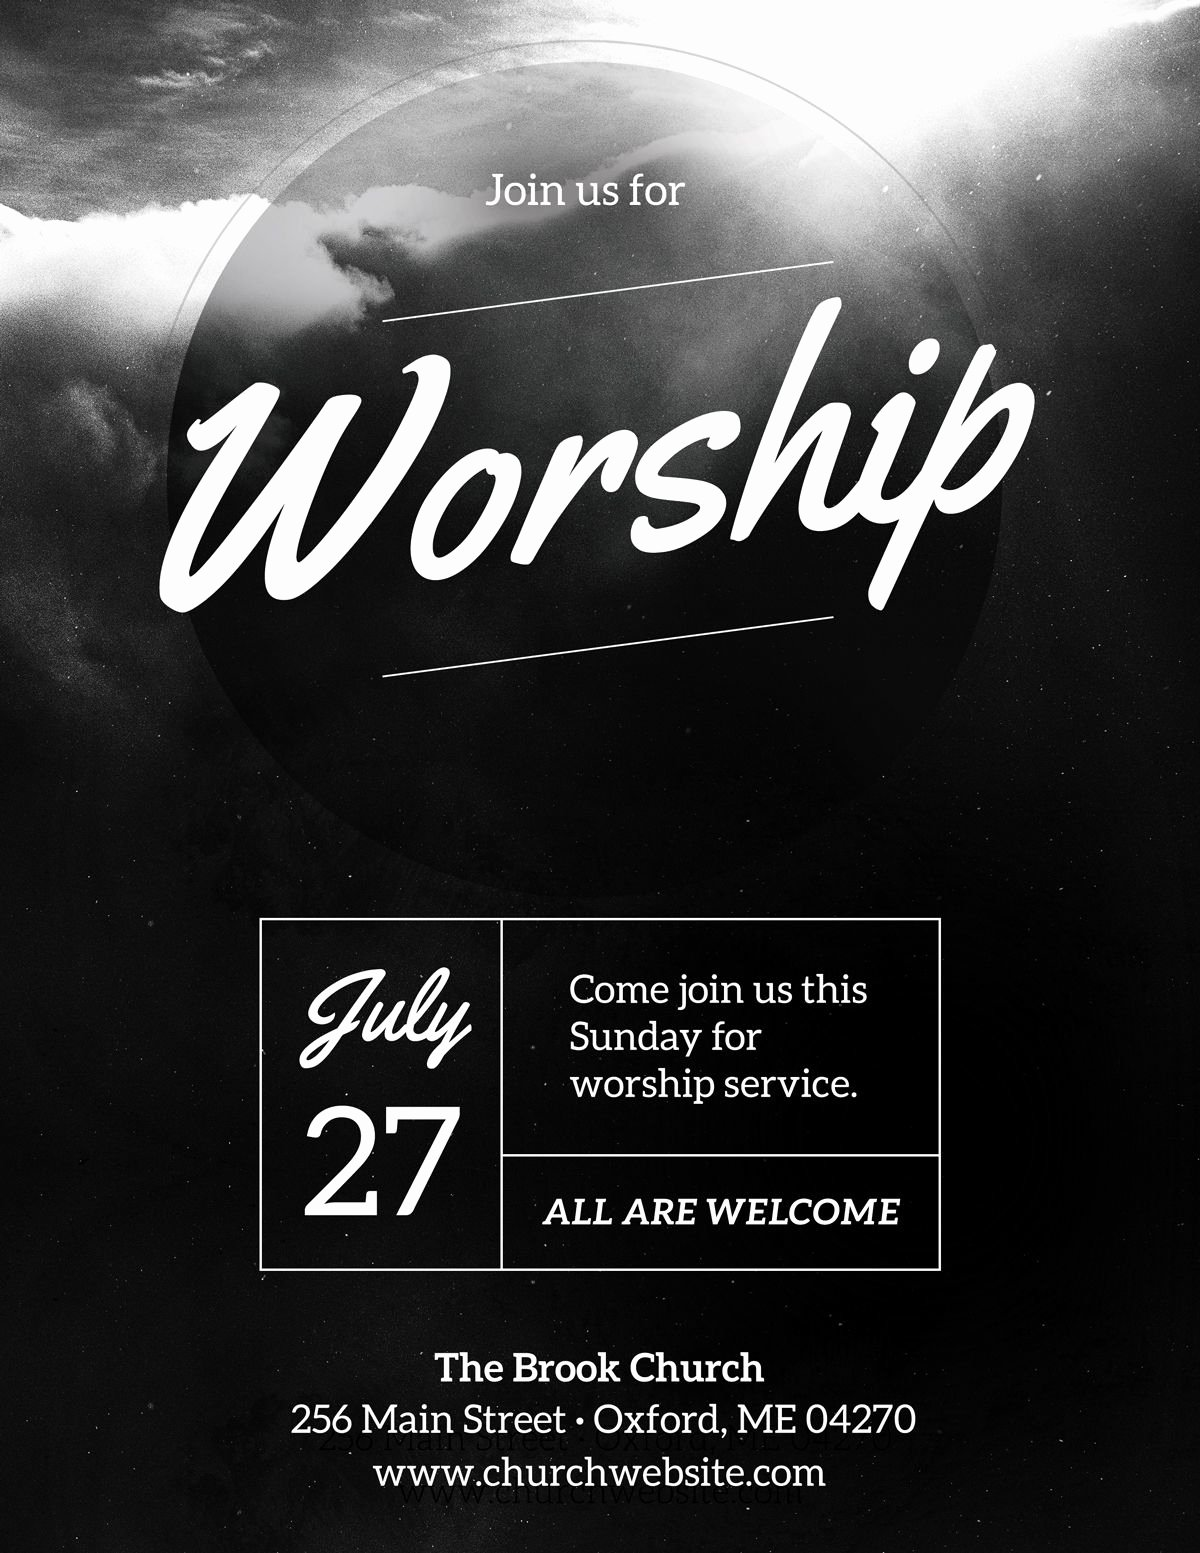 Free Church Flyer Templates Luxury Diy Church event Flyer Template Heavenly Worship for